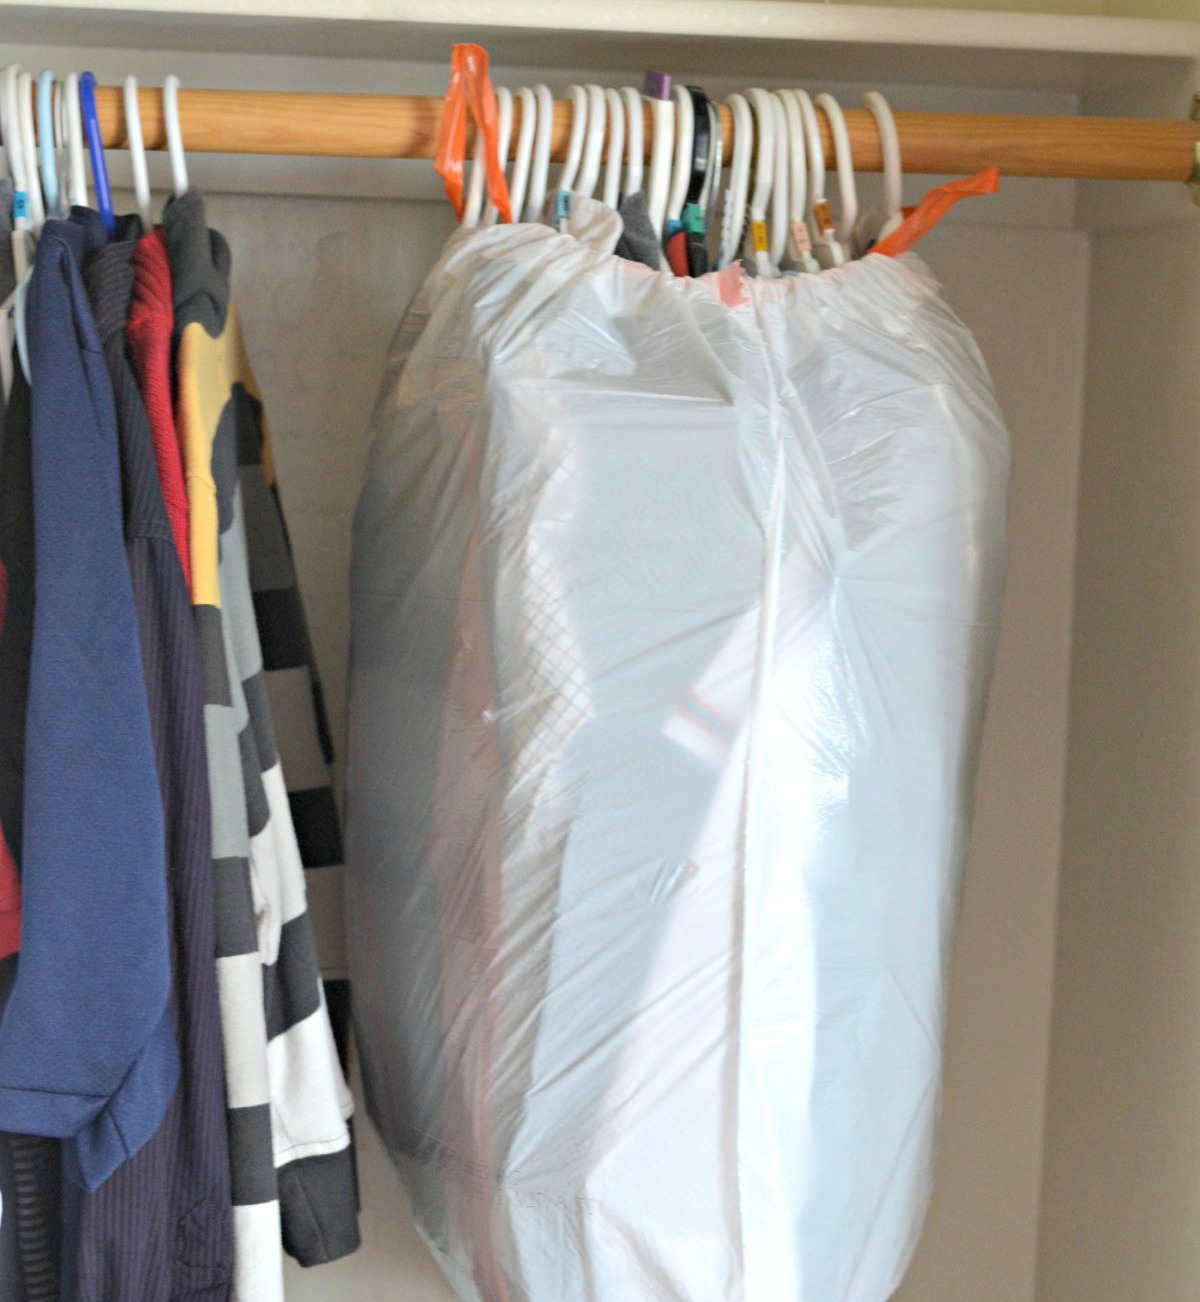 grouped clothes on hangers then wrapped in garbage bags